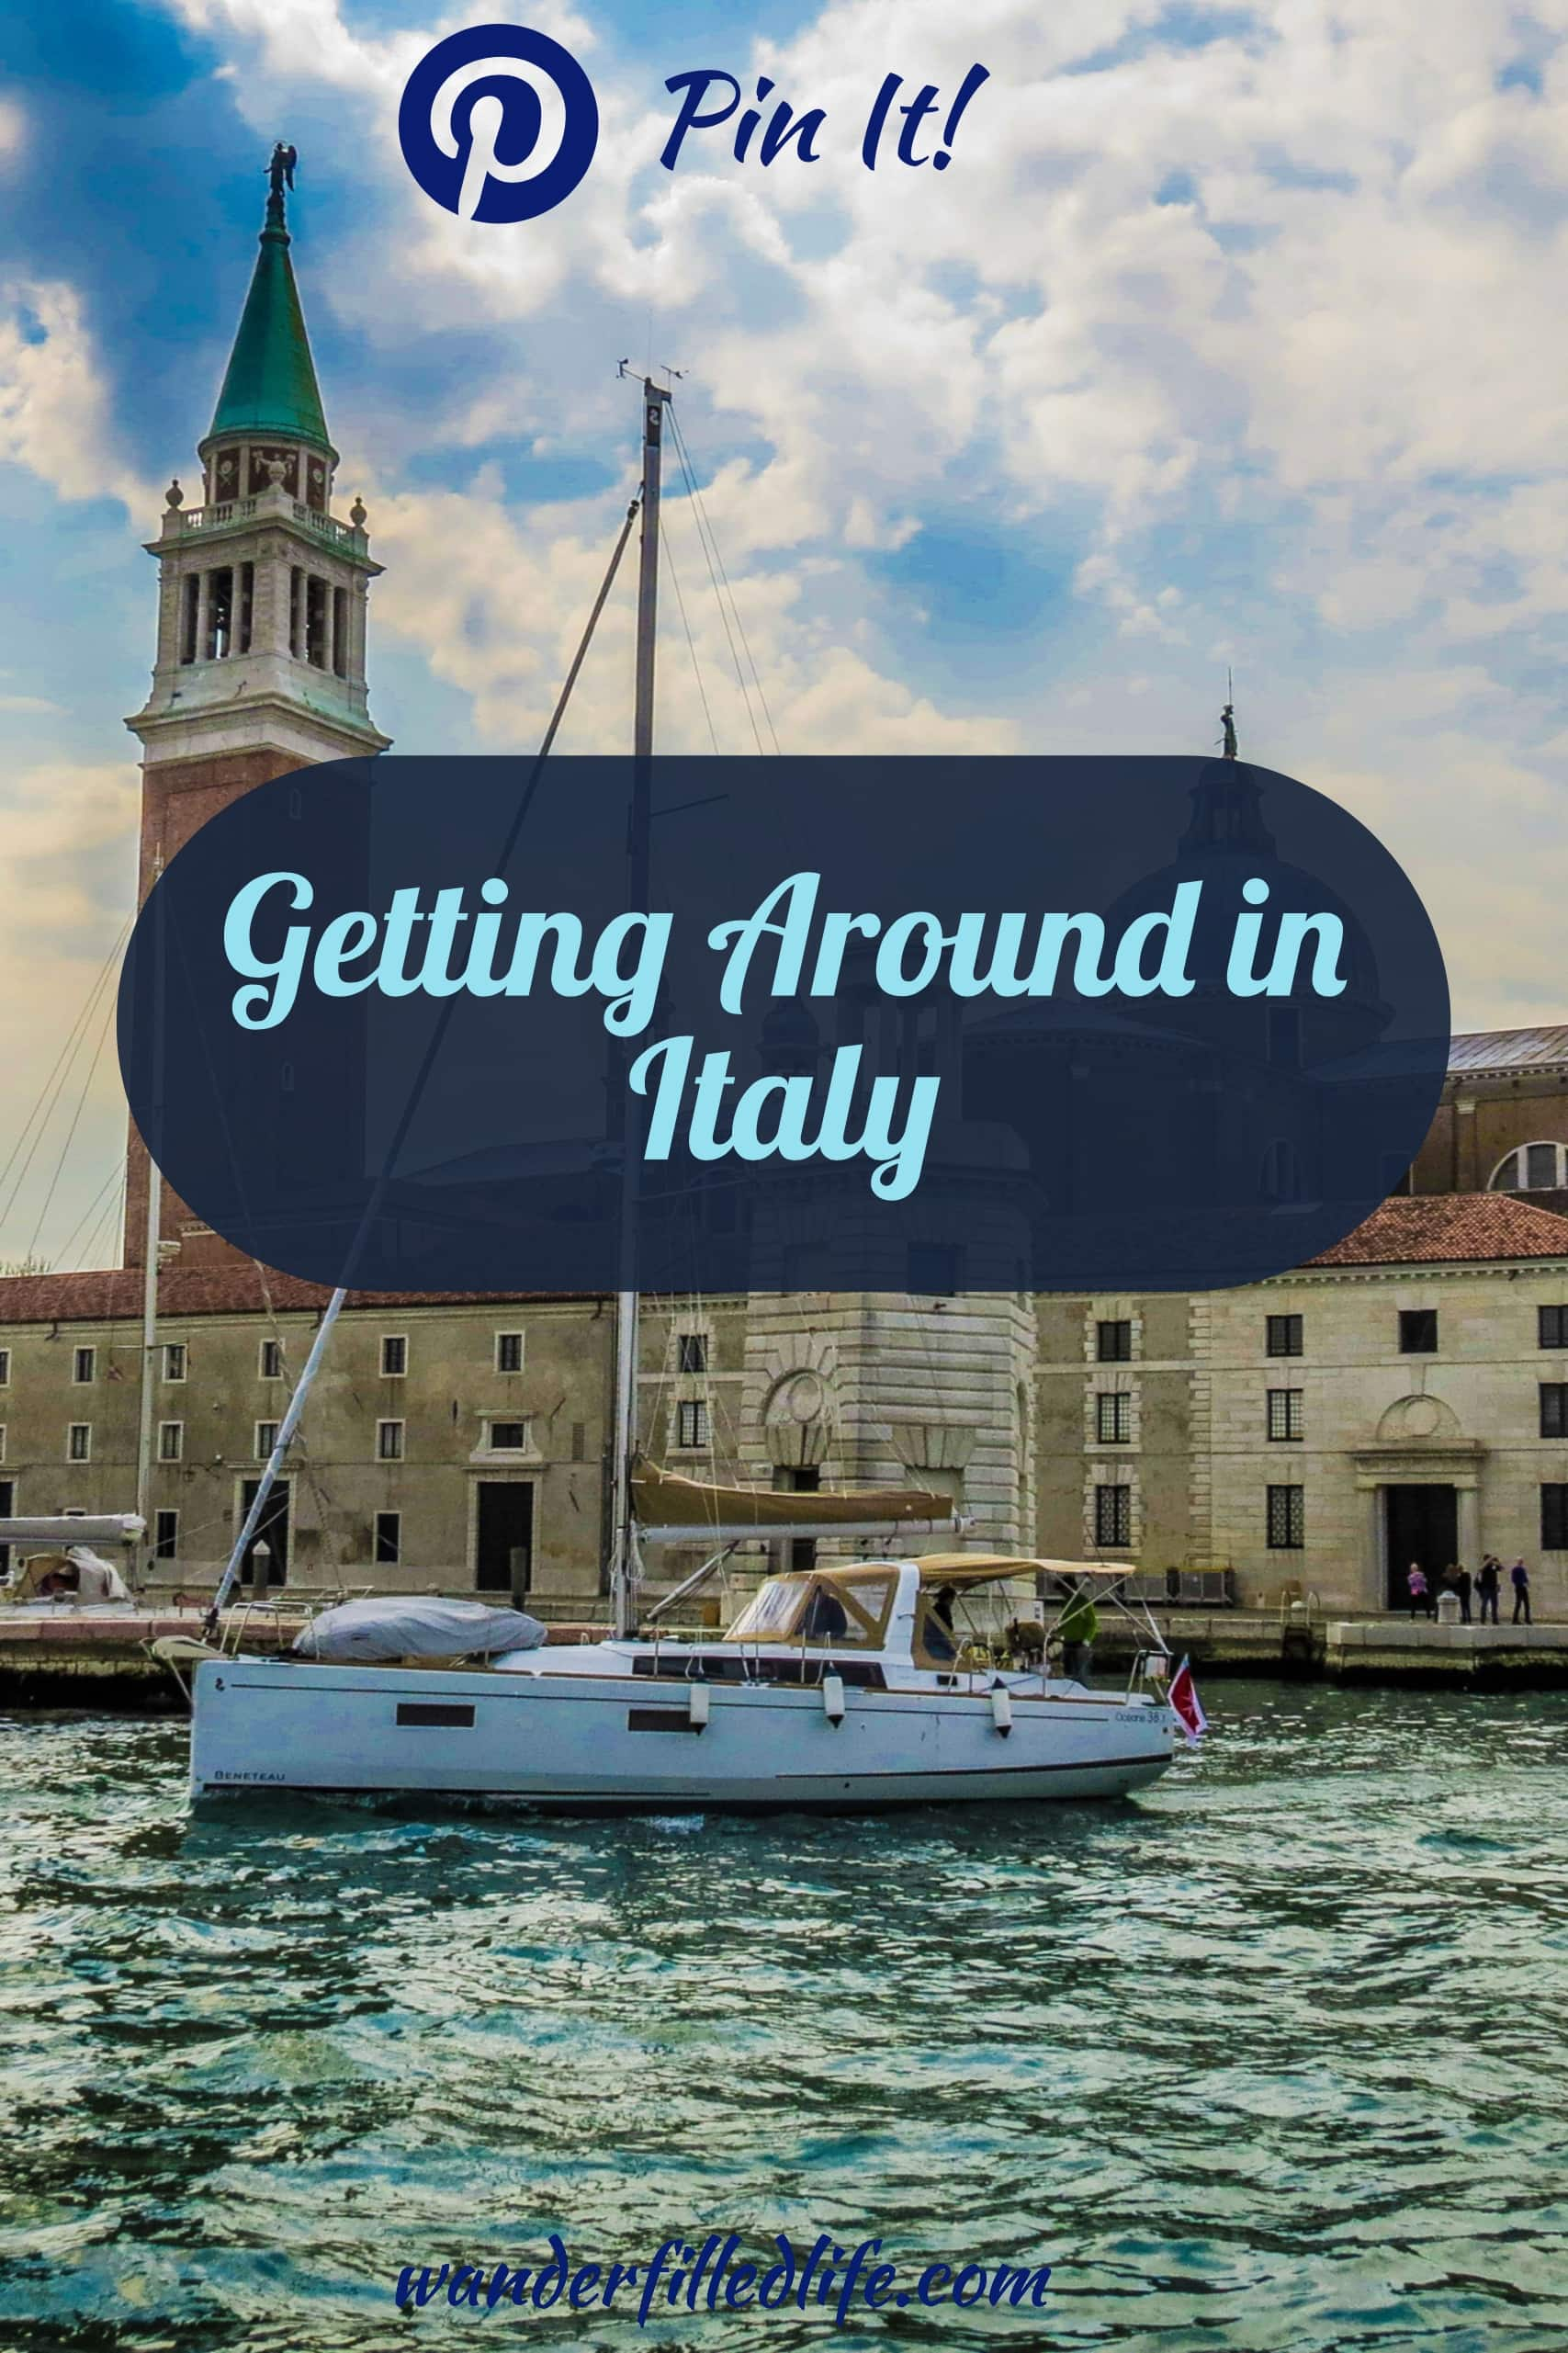 When it comes to getting around in Italy, there are a lot of transportation options: trains, buses, ferries, airplanes and cars. We consider the pros and cons of each and shared what worked and didn't work for us.